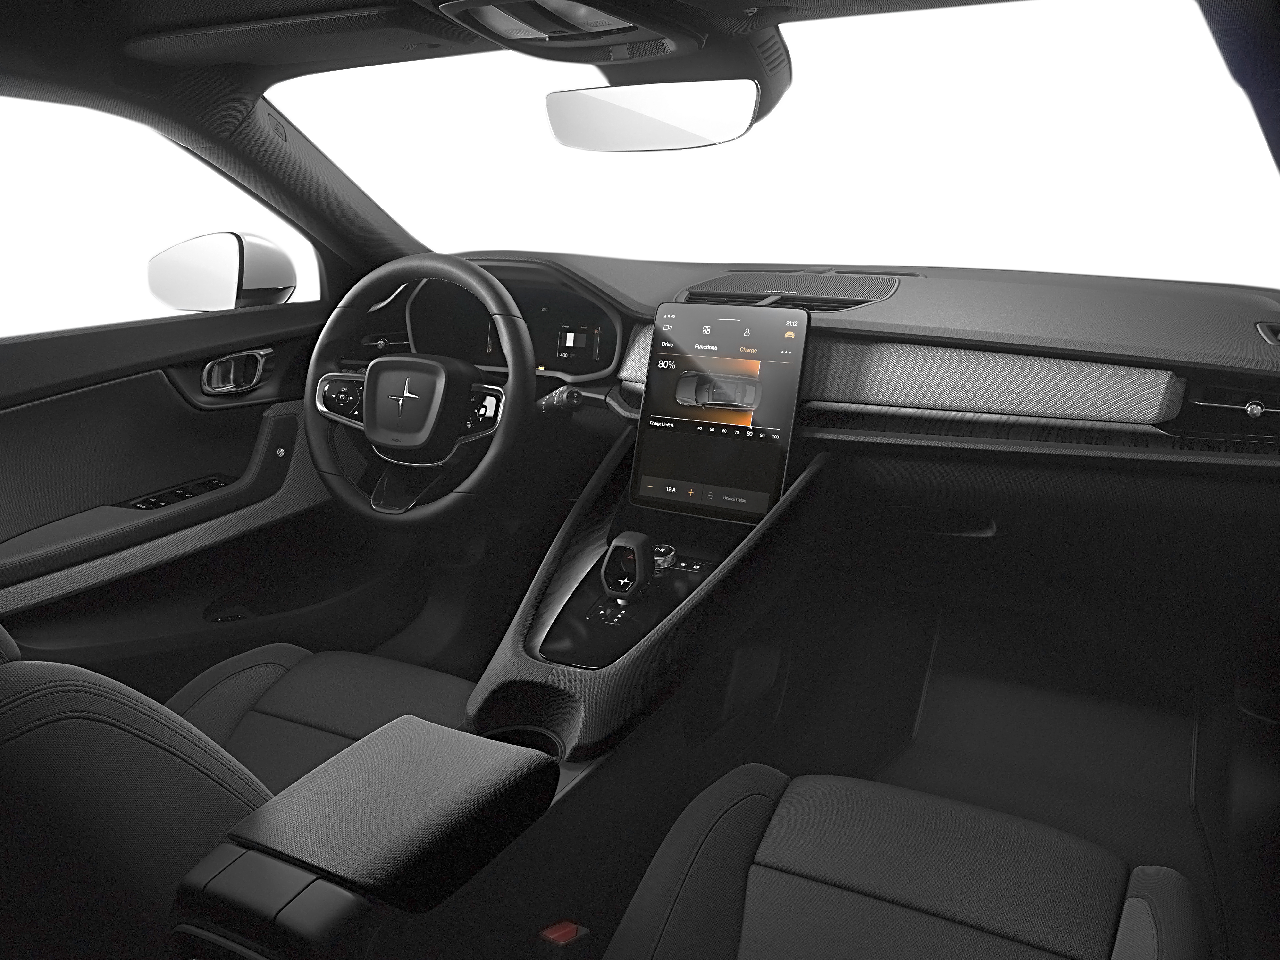 Interior view of the Polestar 2